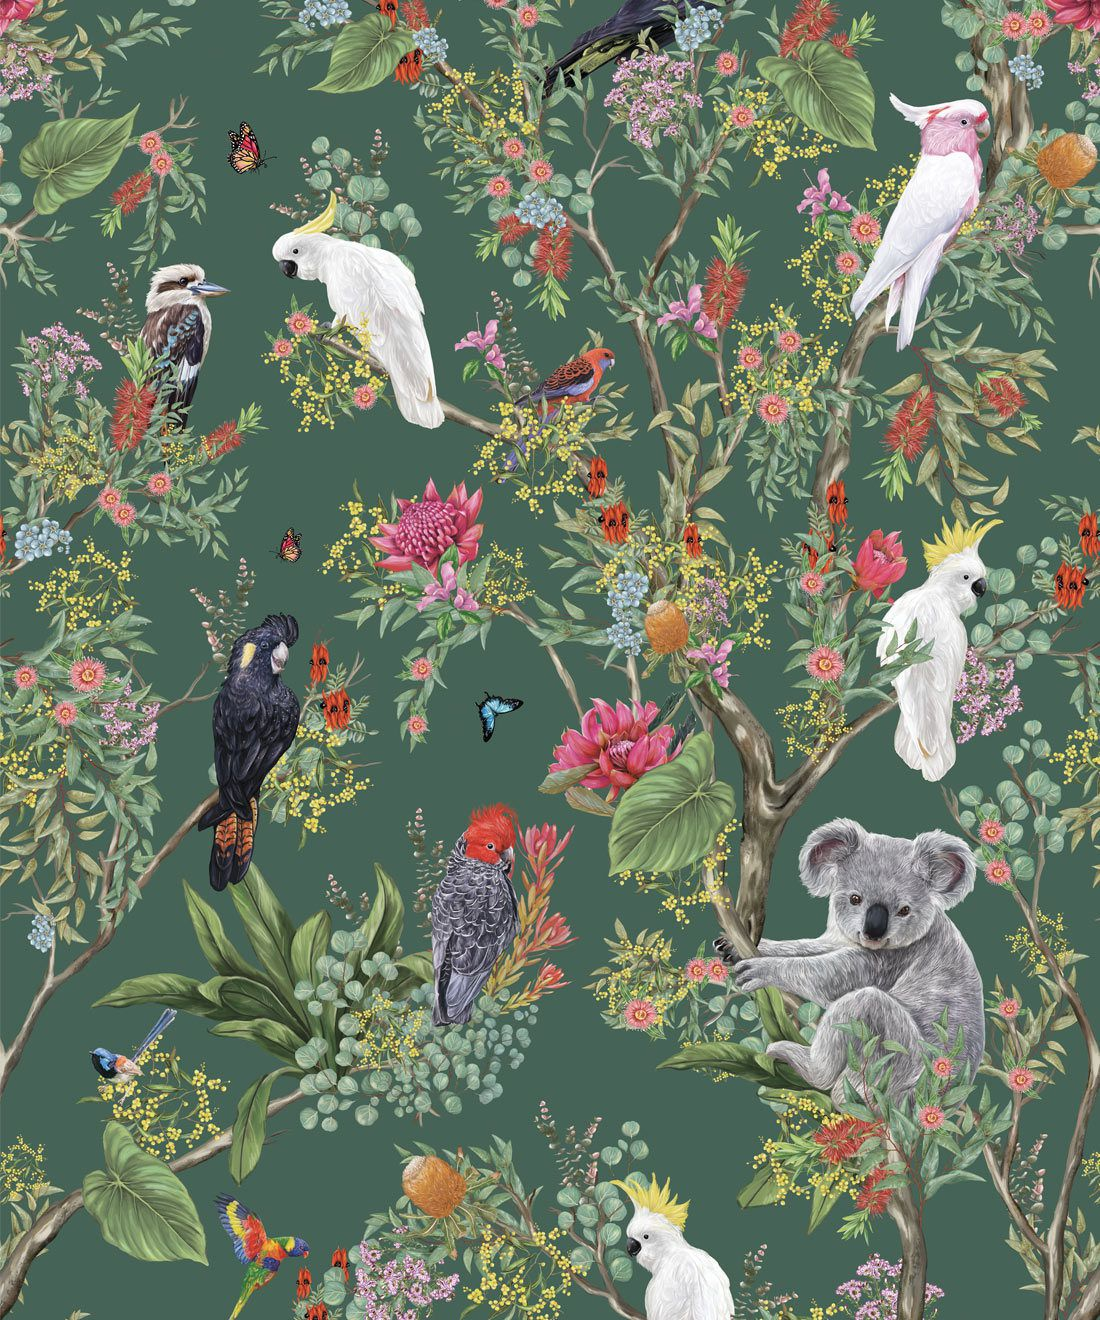 Australia Wallpaper • Cockatoos, Koalas, Parrots, Finches • Milton & King Australia • Green Wallpaper Swatch